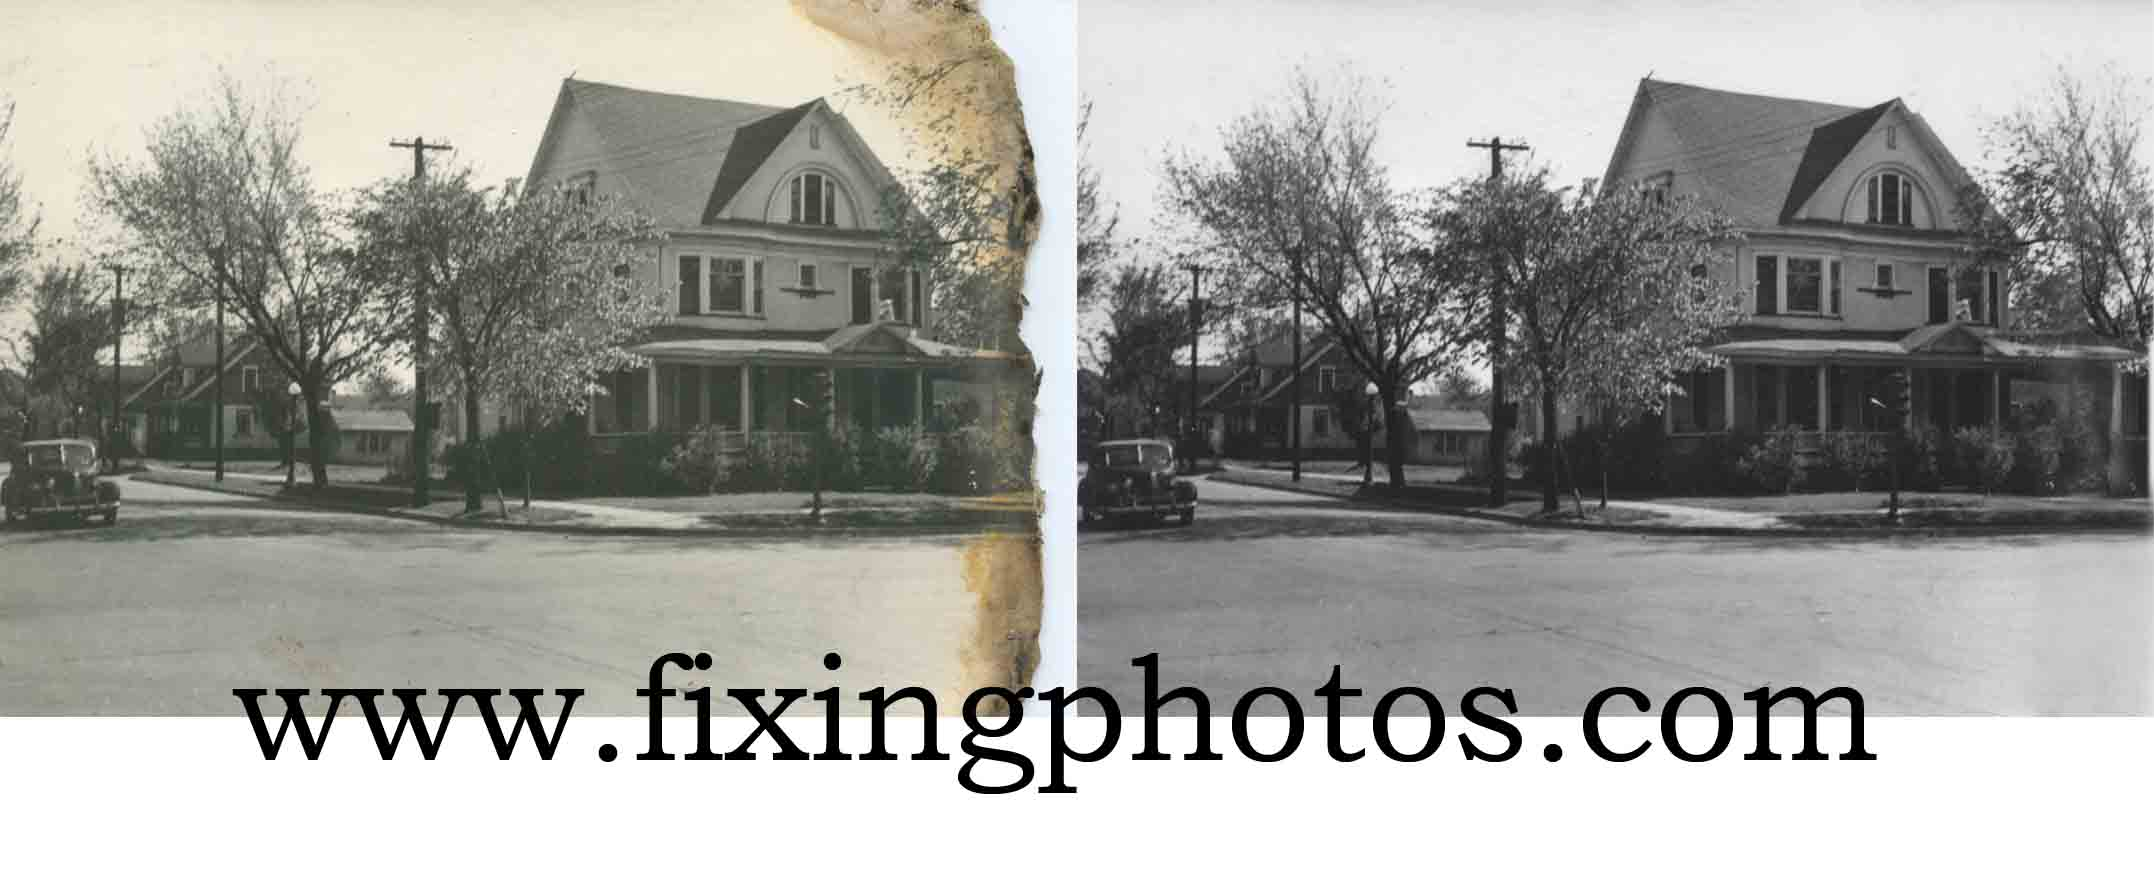 Photo Repair Wizards Of Fixing Photos Can Fix Your Burnt or Water Damaged Photos Visit www.fixingphotos.com Free Photo Repair Estimates! #photorepair #photorestoration